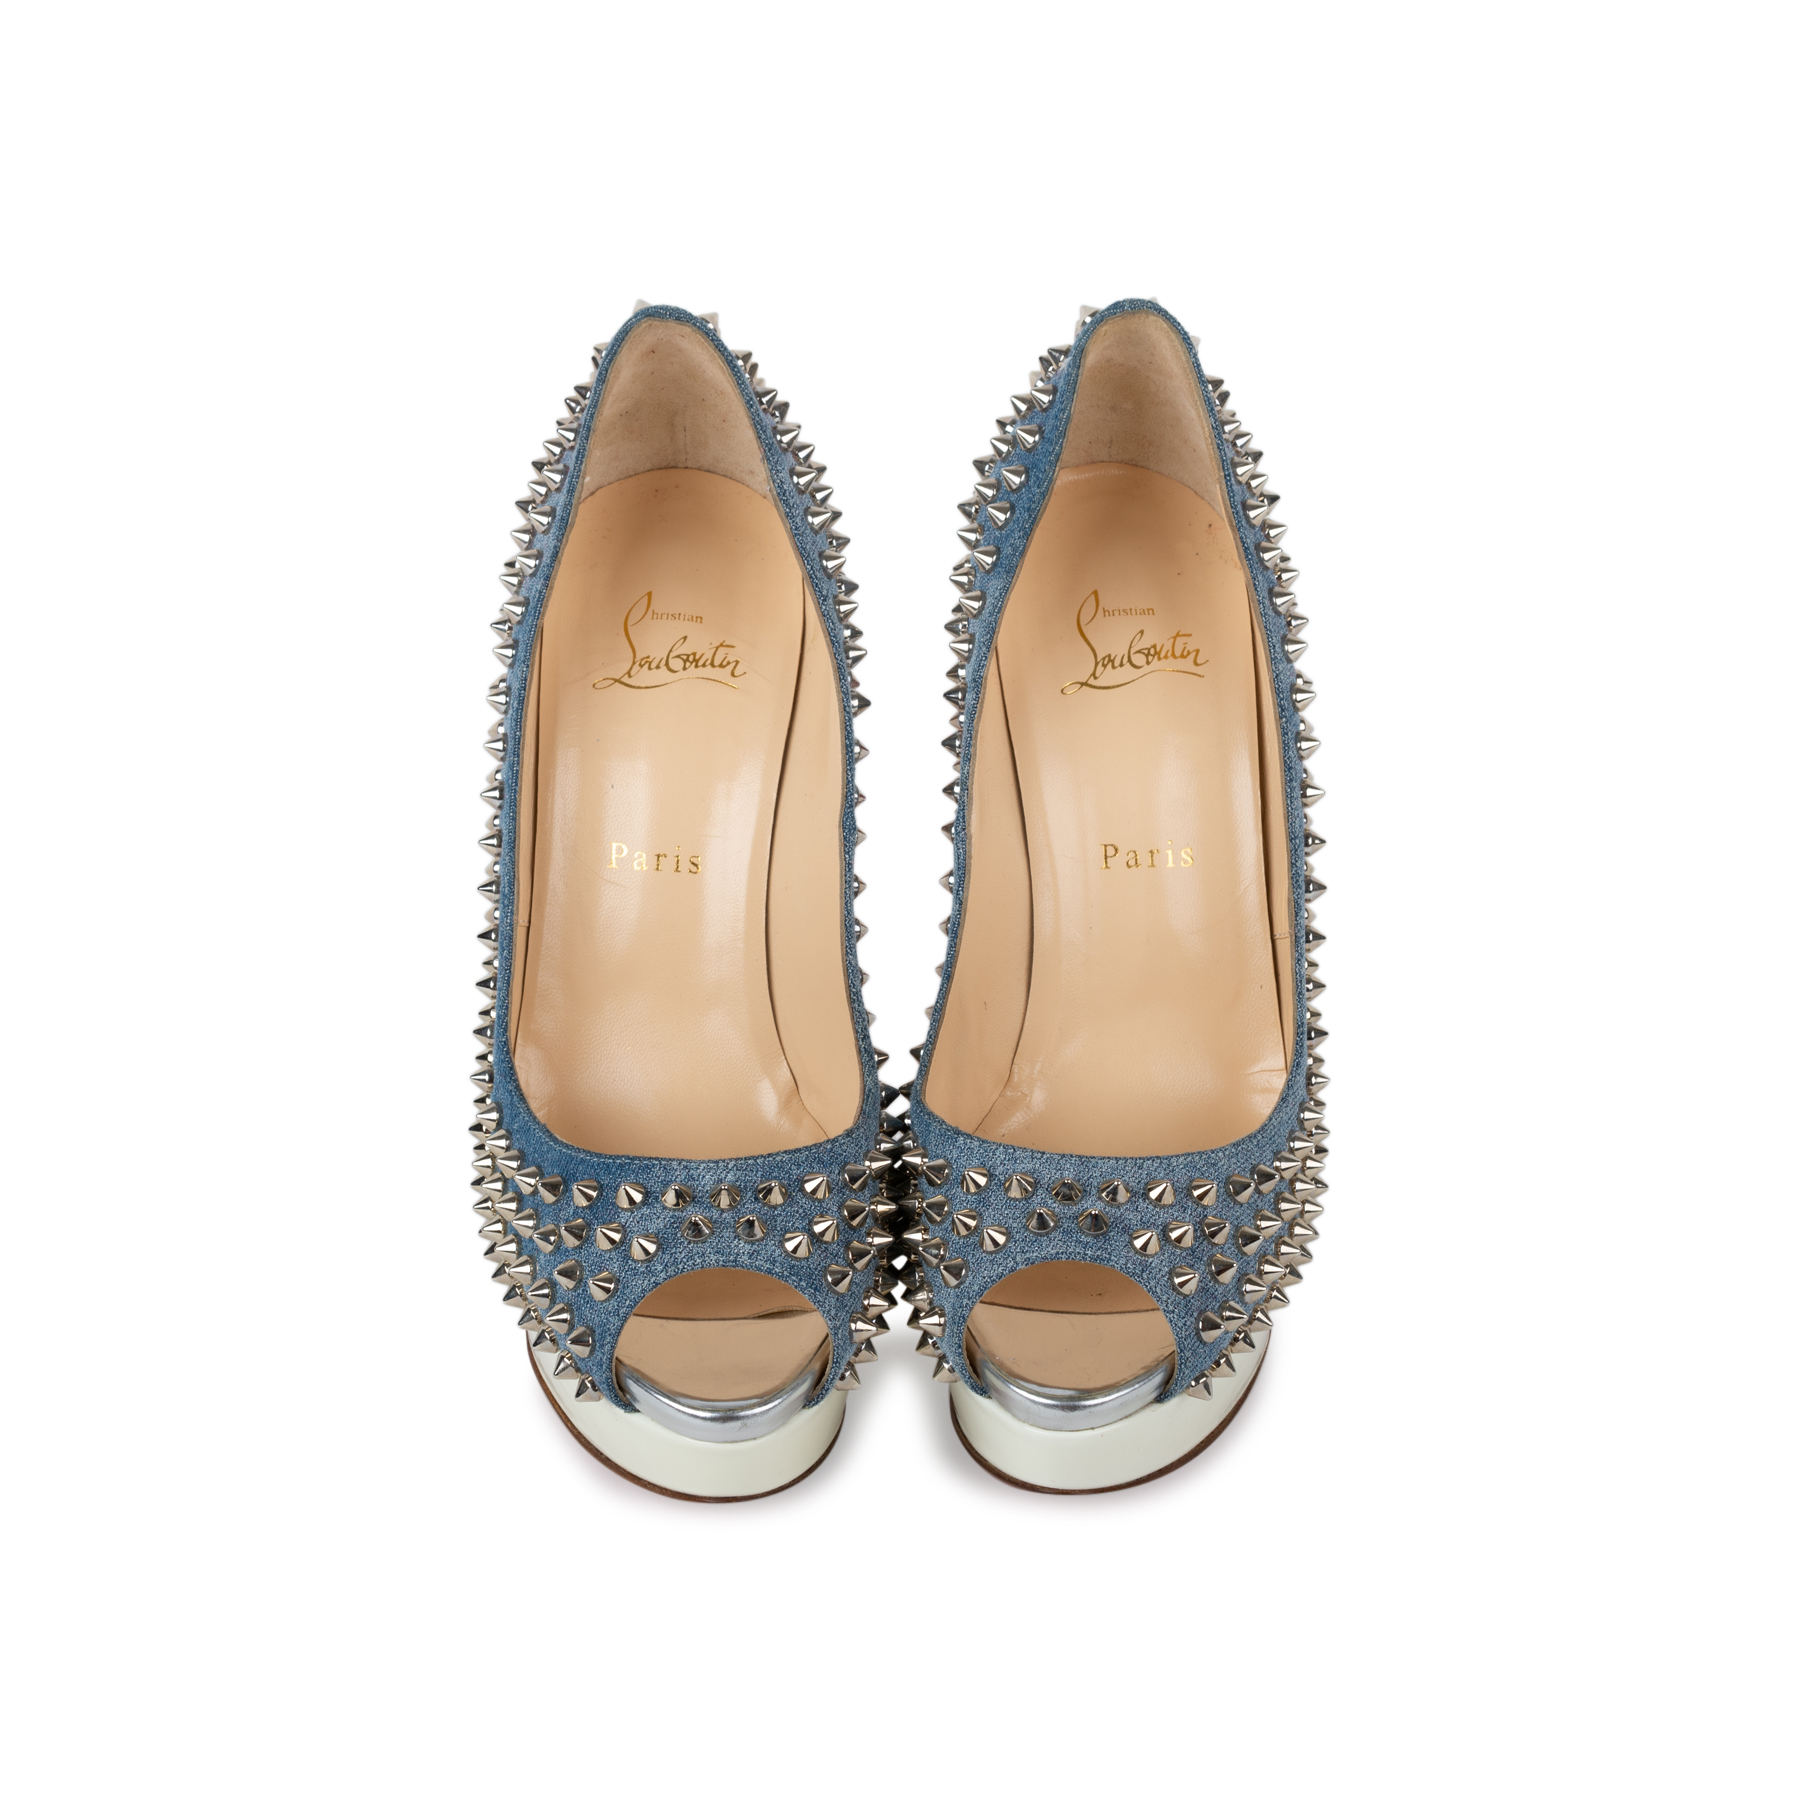 new arrival 24c8c 631a1 Lady Peep Denim Spiked Pumps